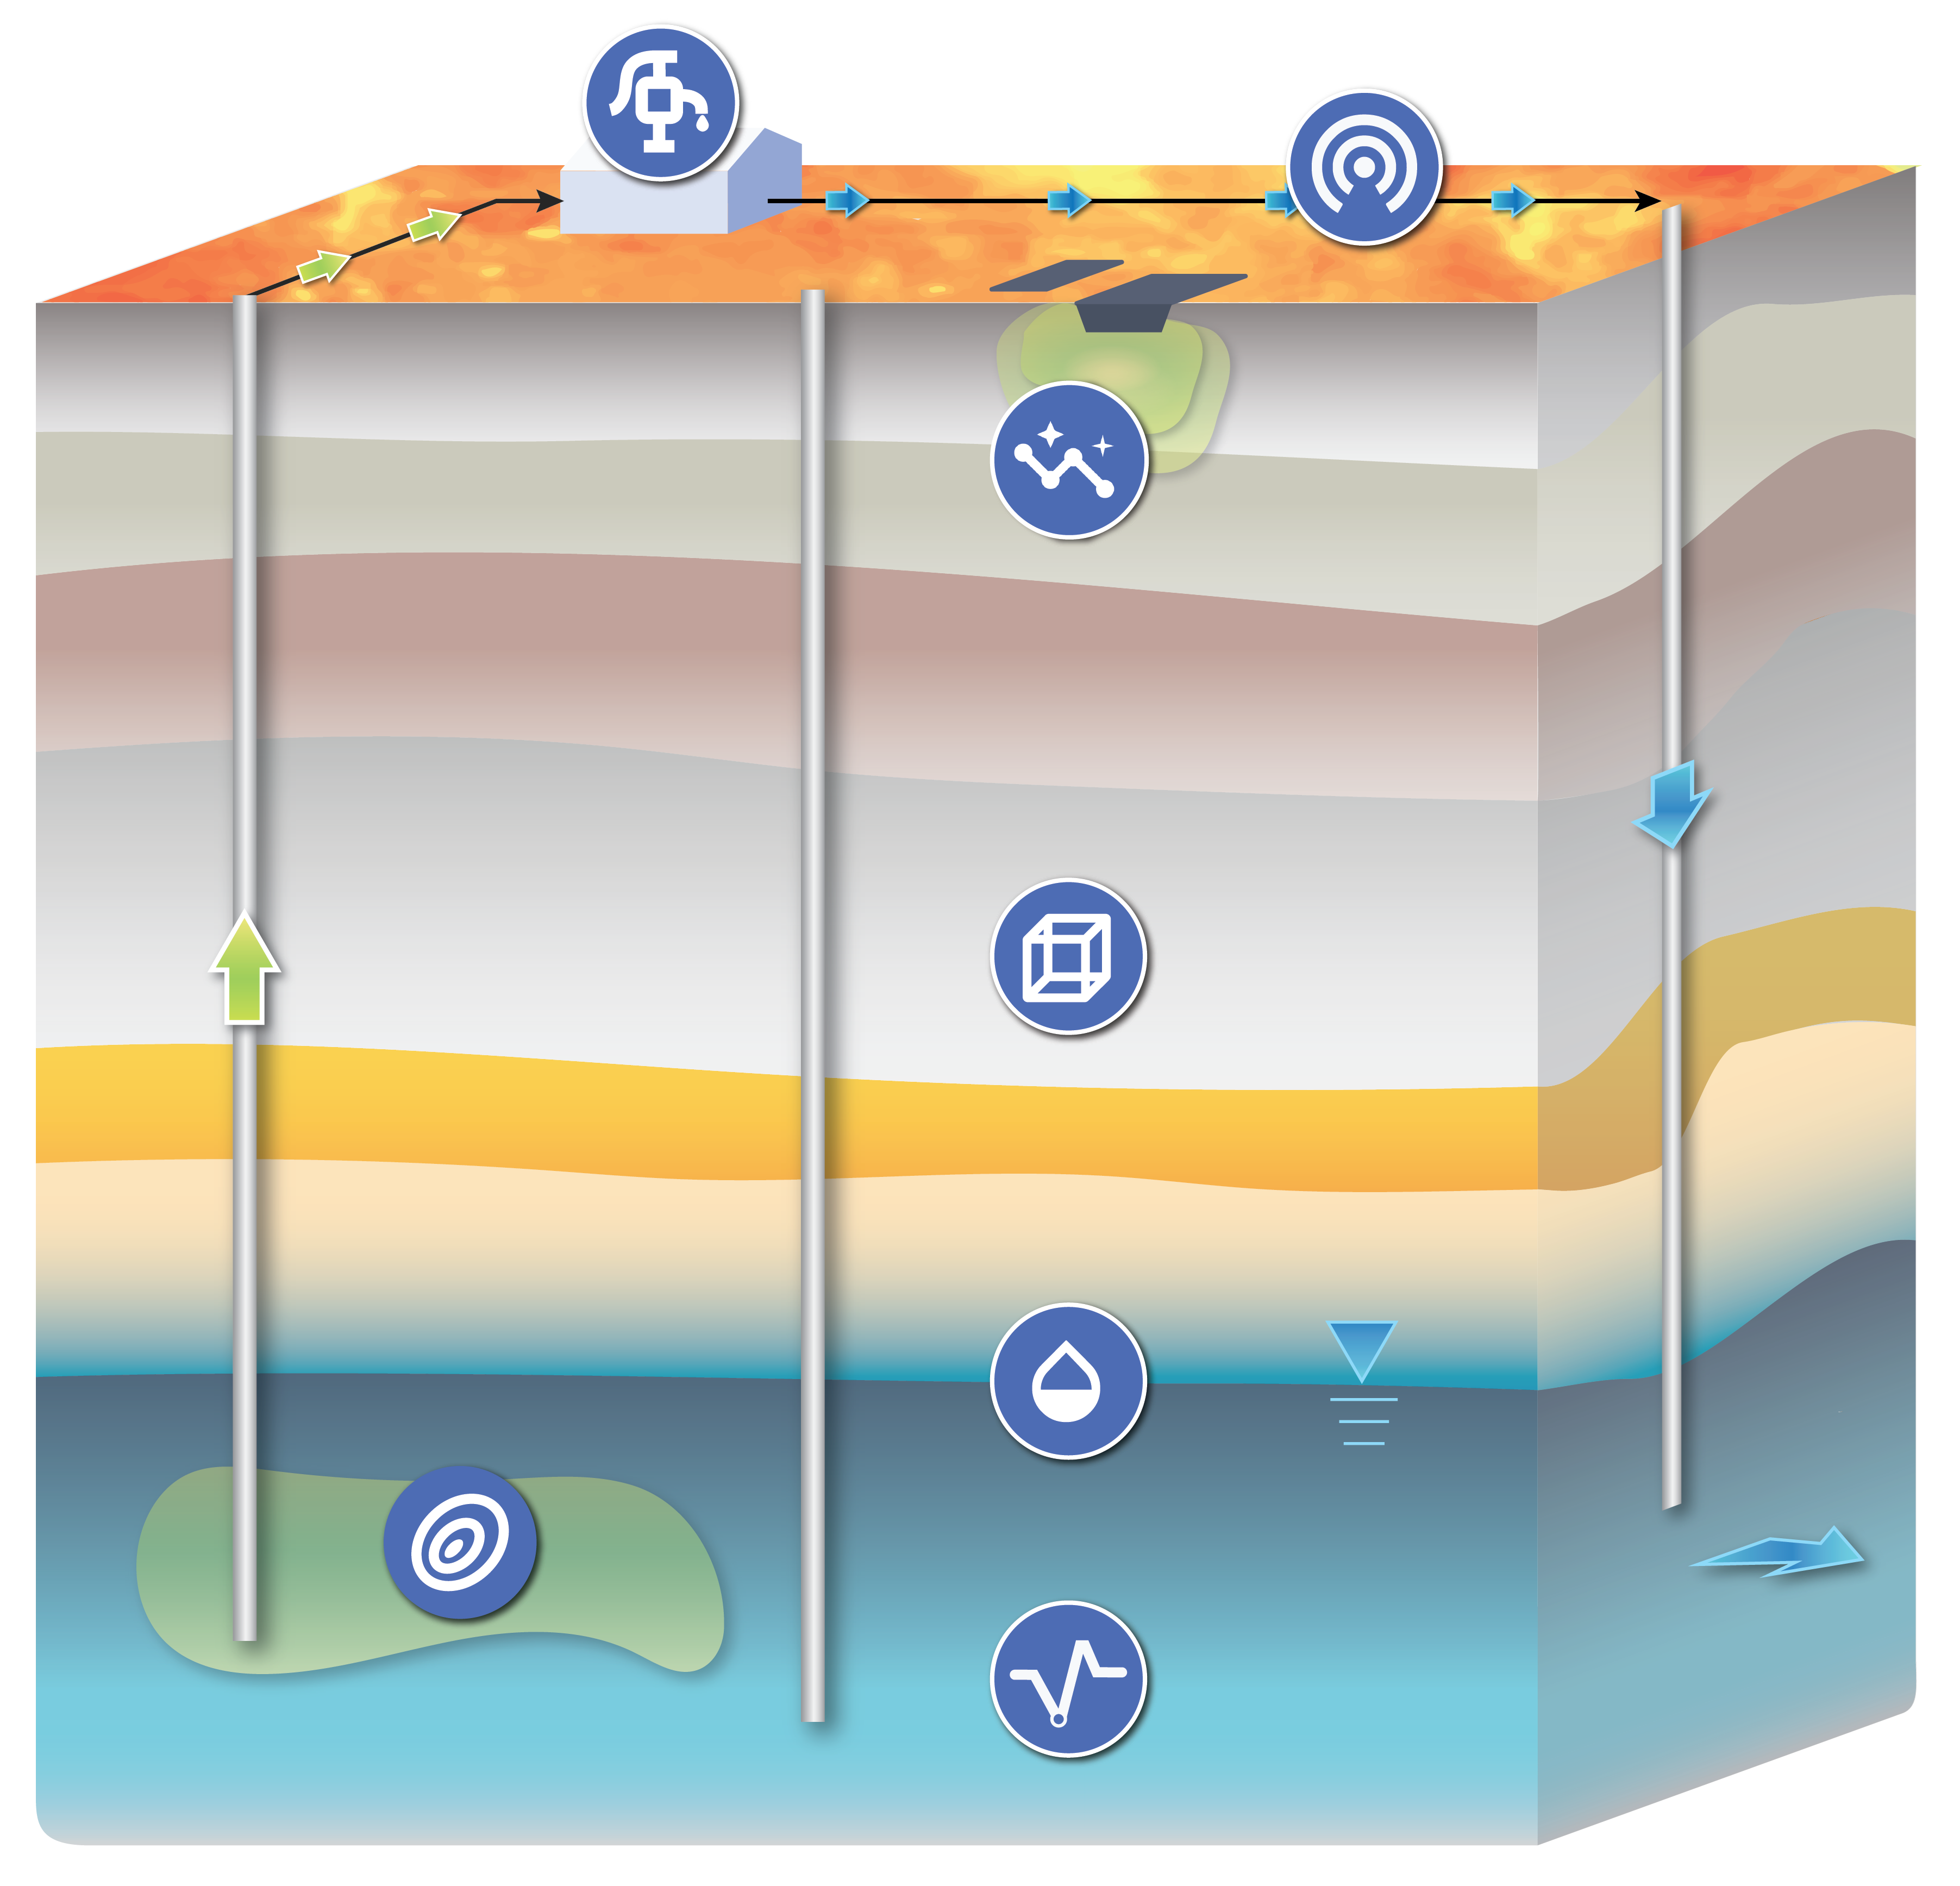 Illustration showing where the different SOCRATES tools apply in the subsurface.